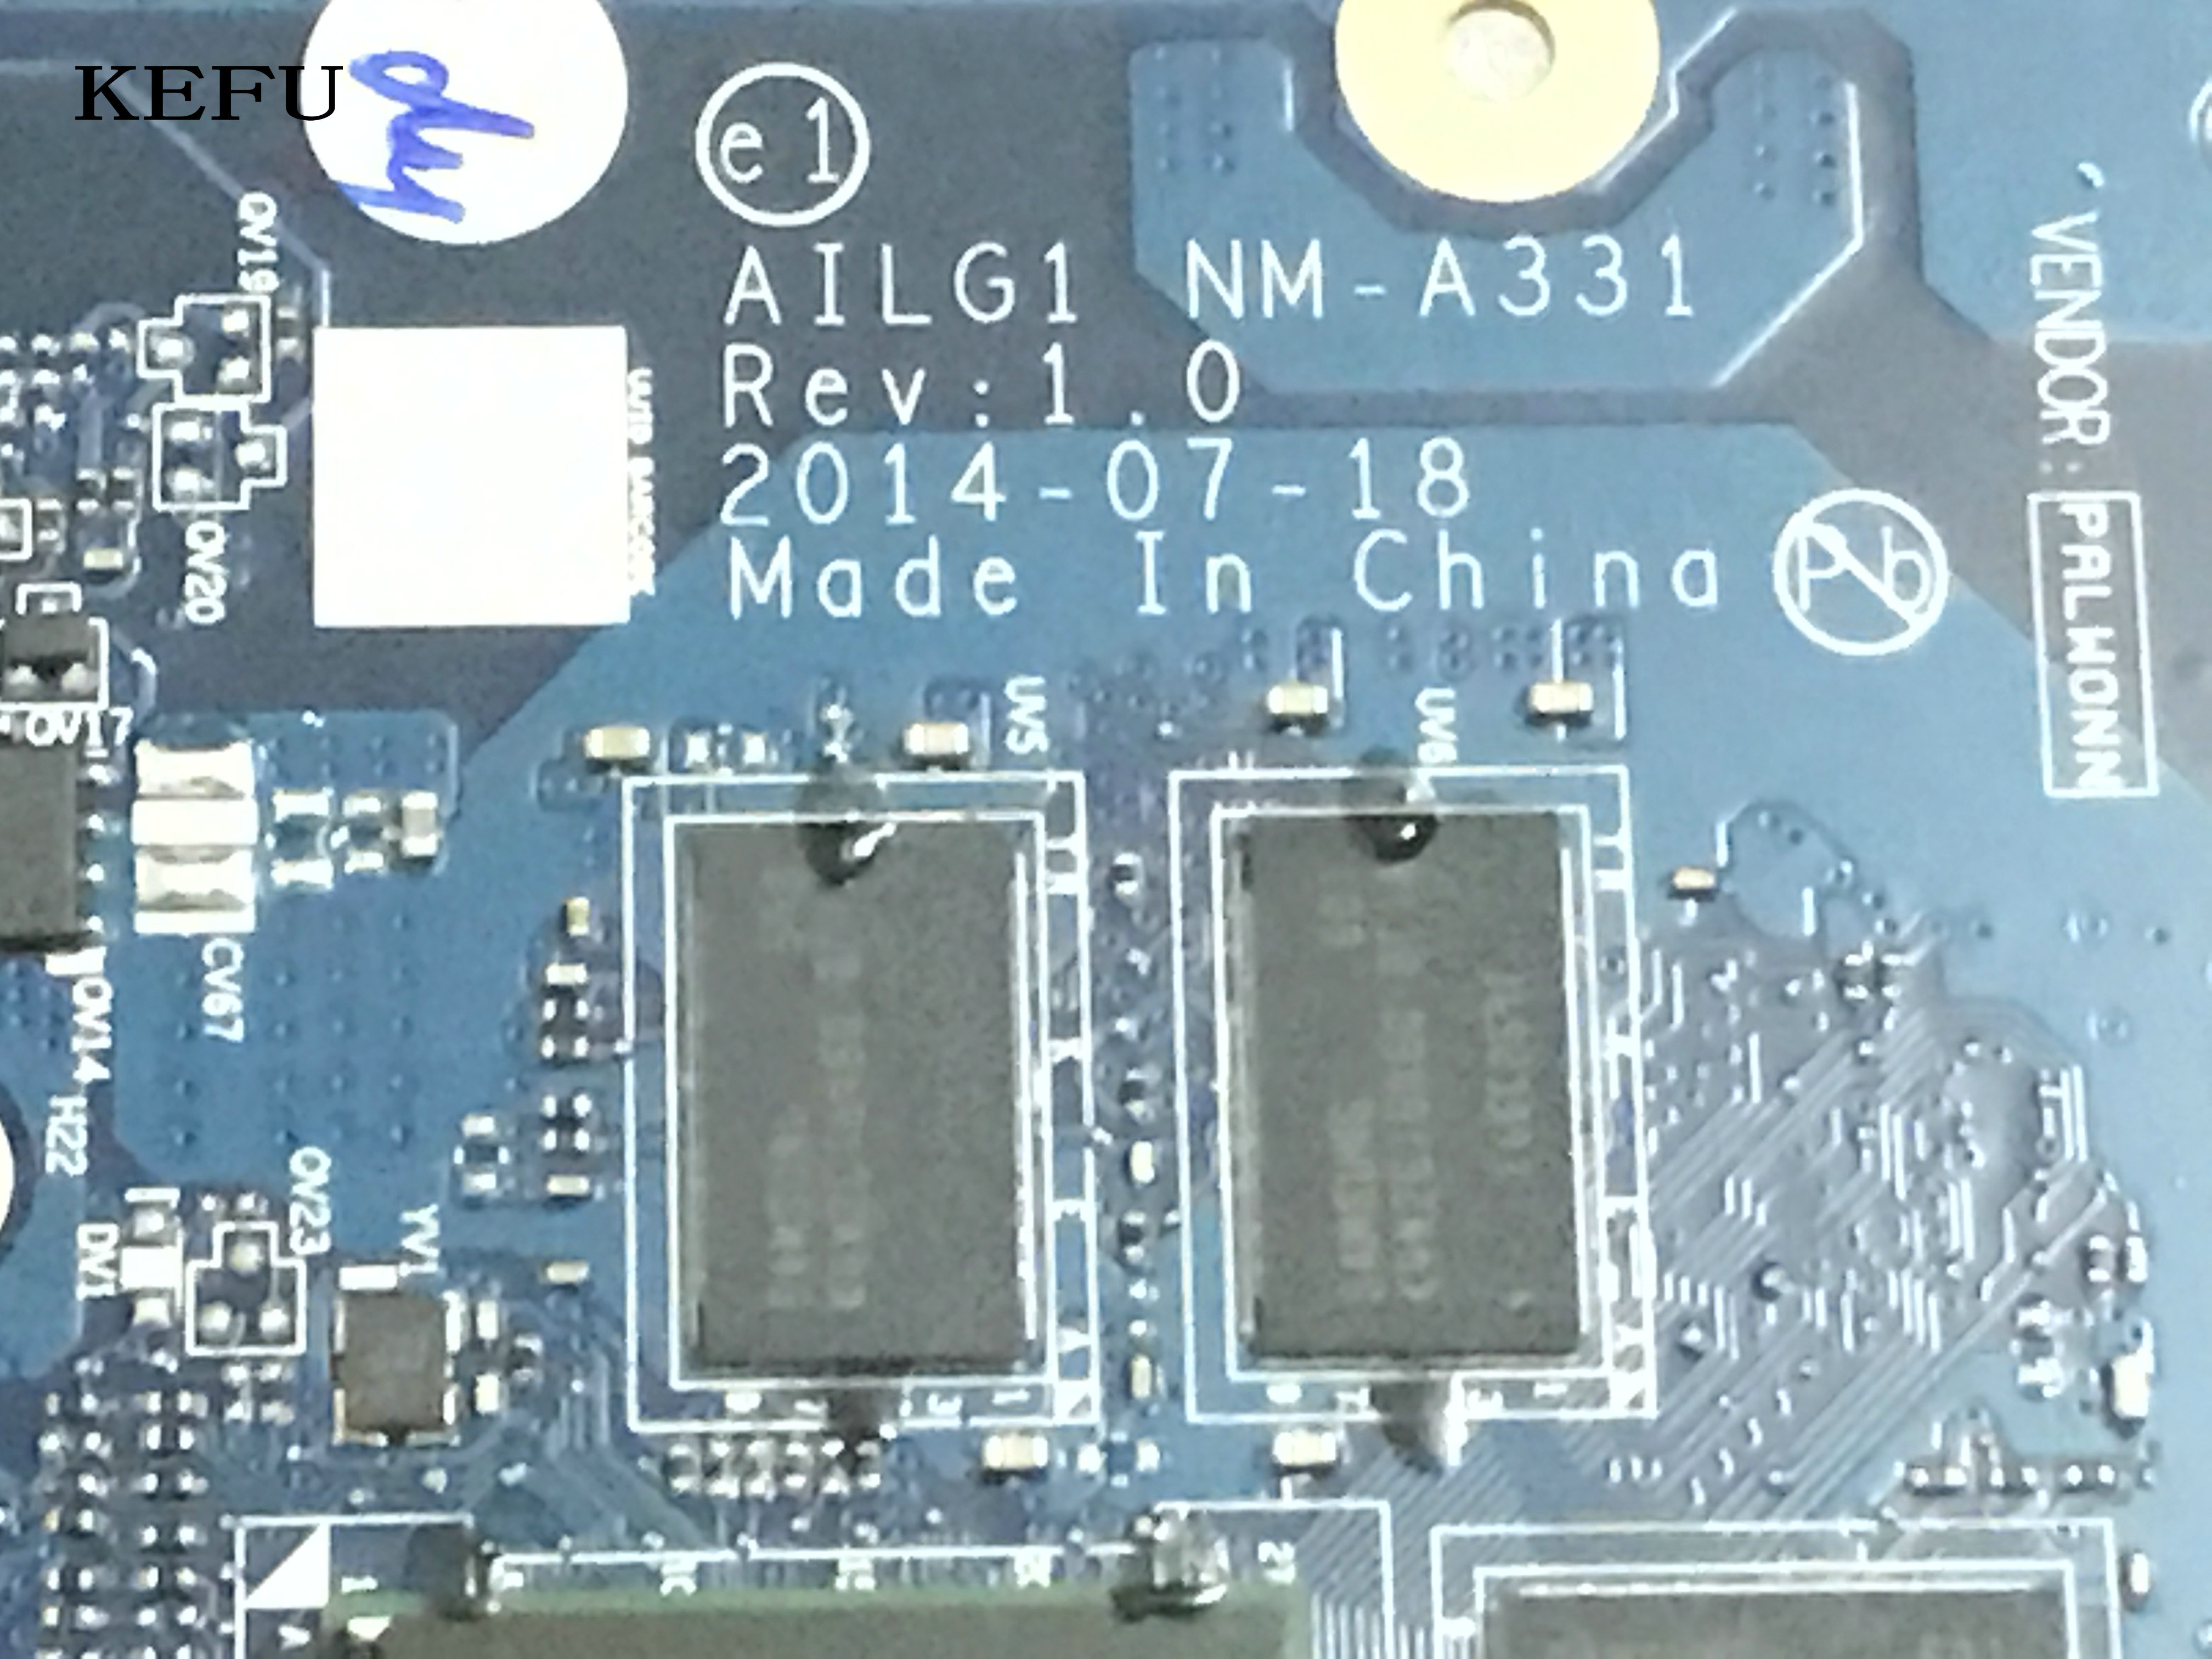 KEFU  100% NEW  AILG1 NM-A331 MAINBOARD FIT FOR LENOVO  Z70-80 / Z70-70 LAPTOP MOTHERBOARD   PROCESSOR + VIDEO CARD ON BOARDKEFU  100% NEW  AILG1 NM-A331 MAINBOARD FIT FOR LENOVO  Z70-80 / Z70-70 LAPTOP MOTHERBOARD   PROCESSOR + VIDEO CARD ON BOARD